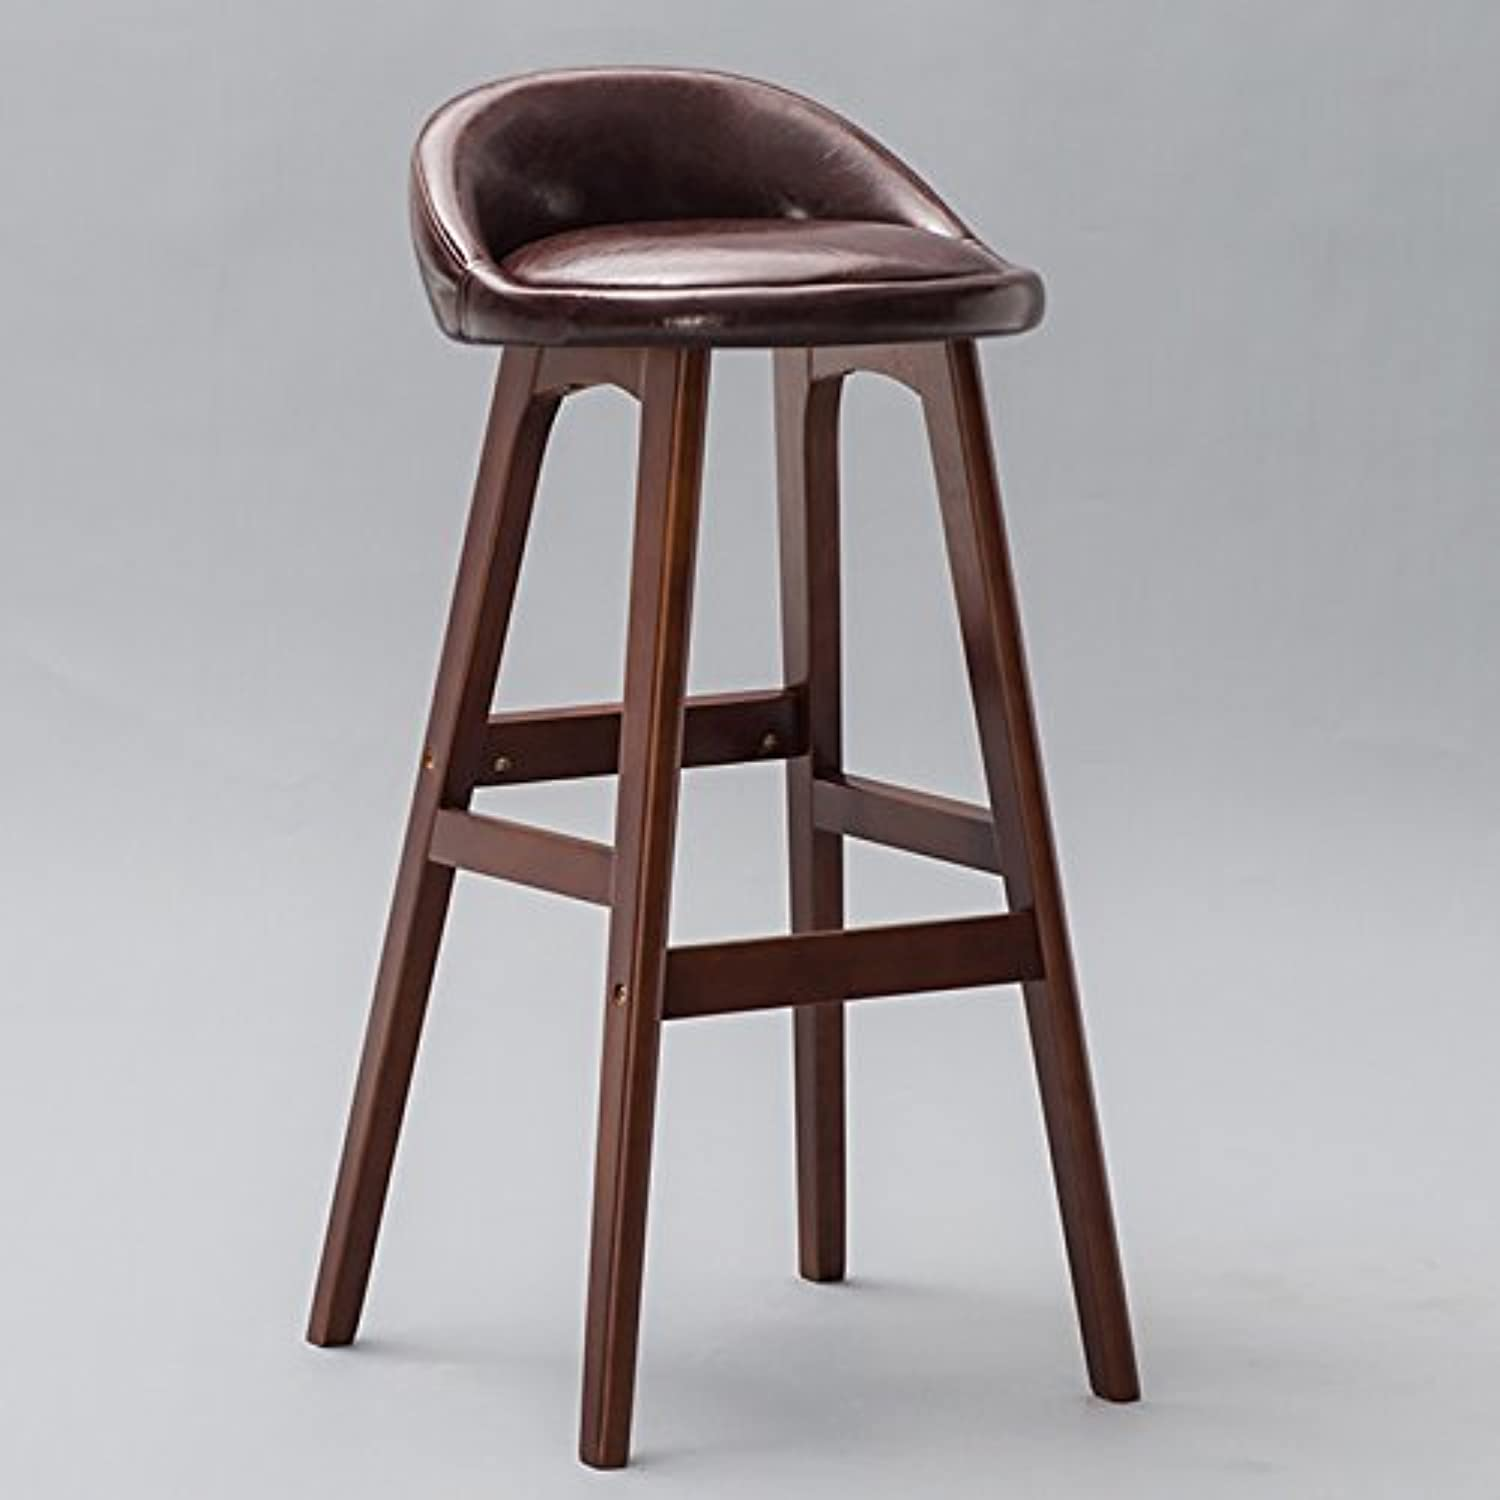 Solid Wood High-leg Bar Backrest Chair, Creative Bar Chair Retro Front High Stool ( color   Brown , Size   S )